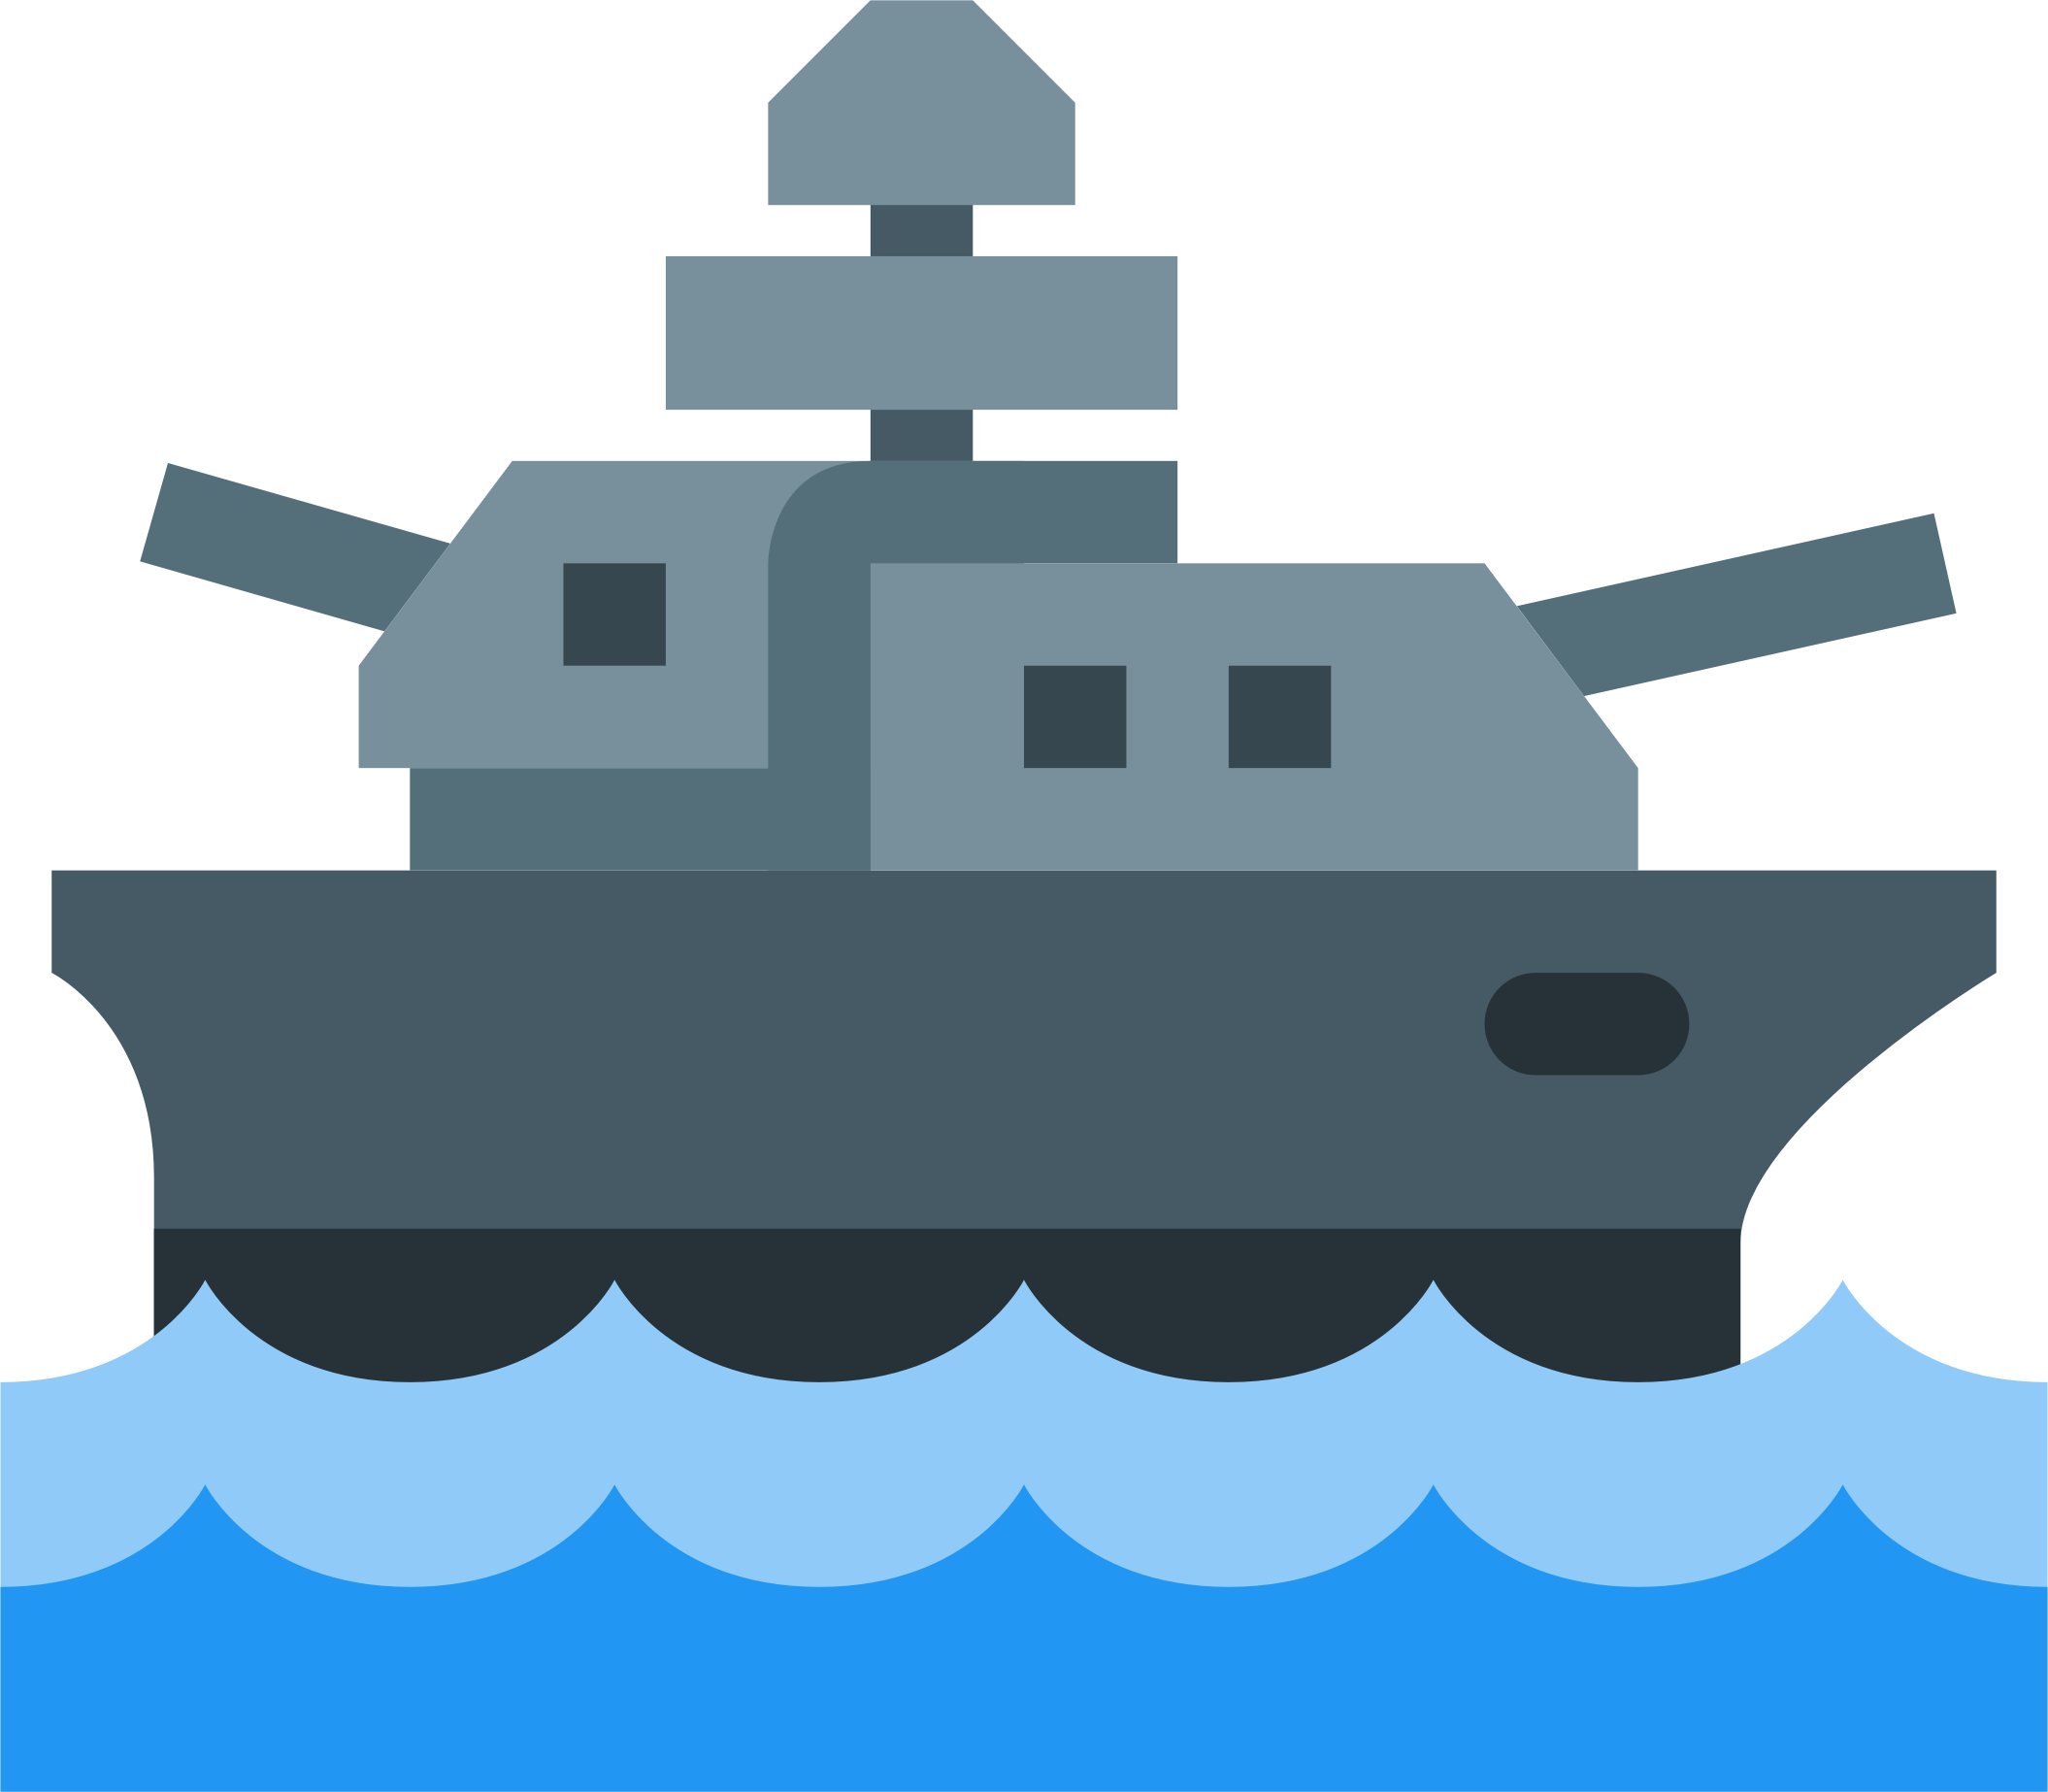 Png Royalty Free Download Battleship Clipart.